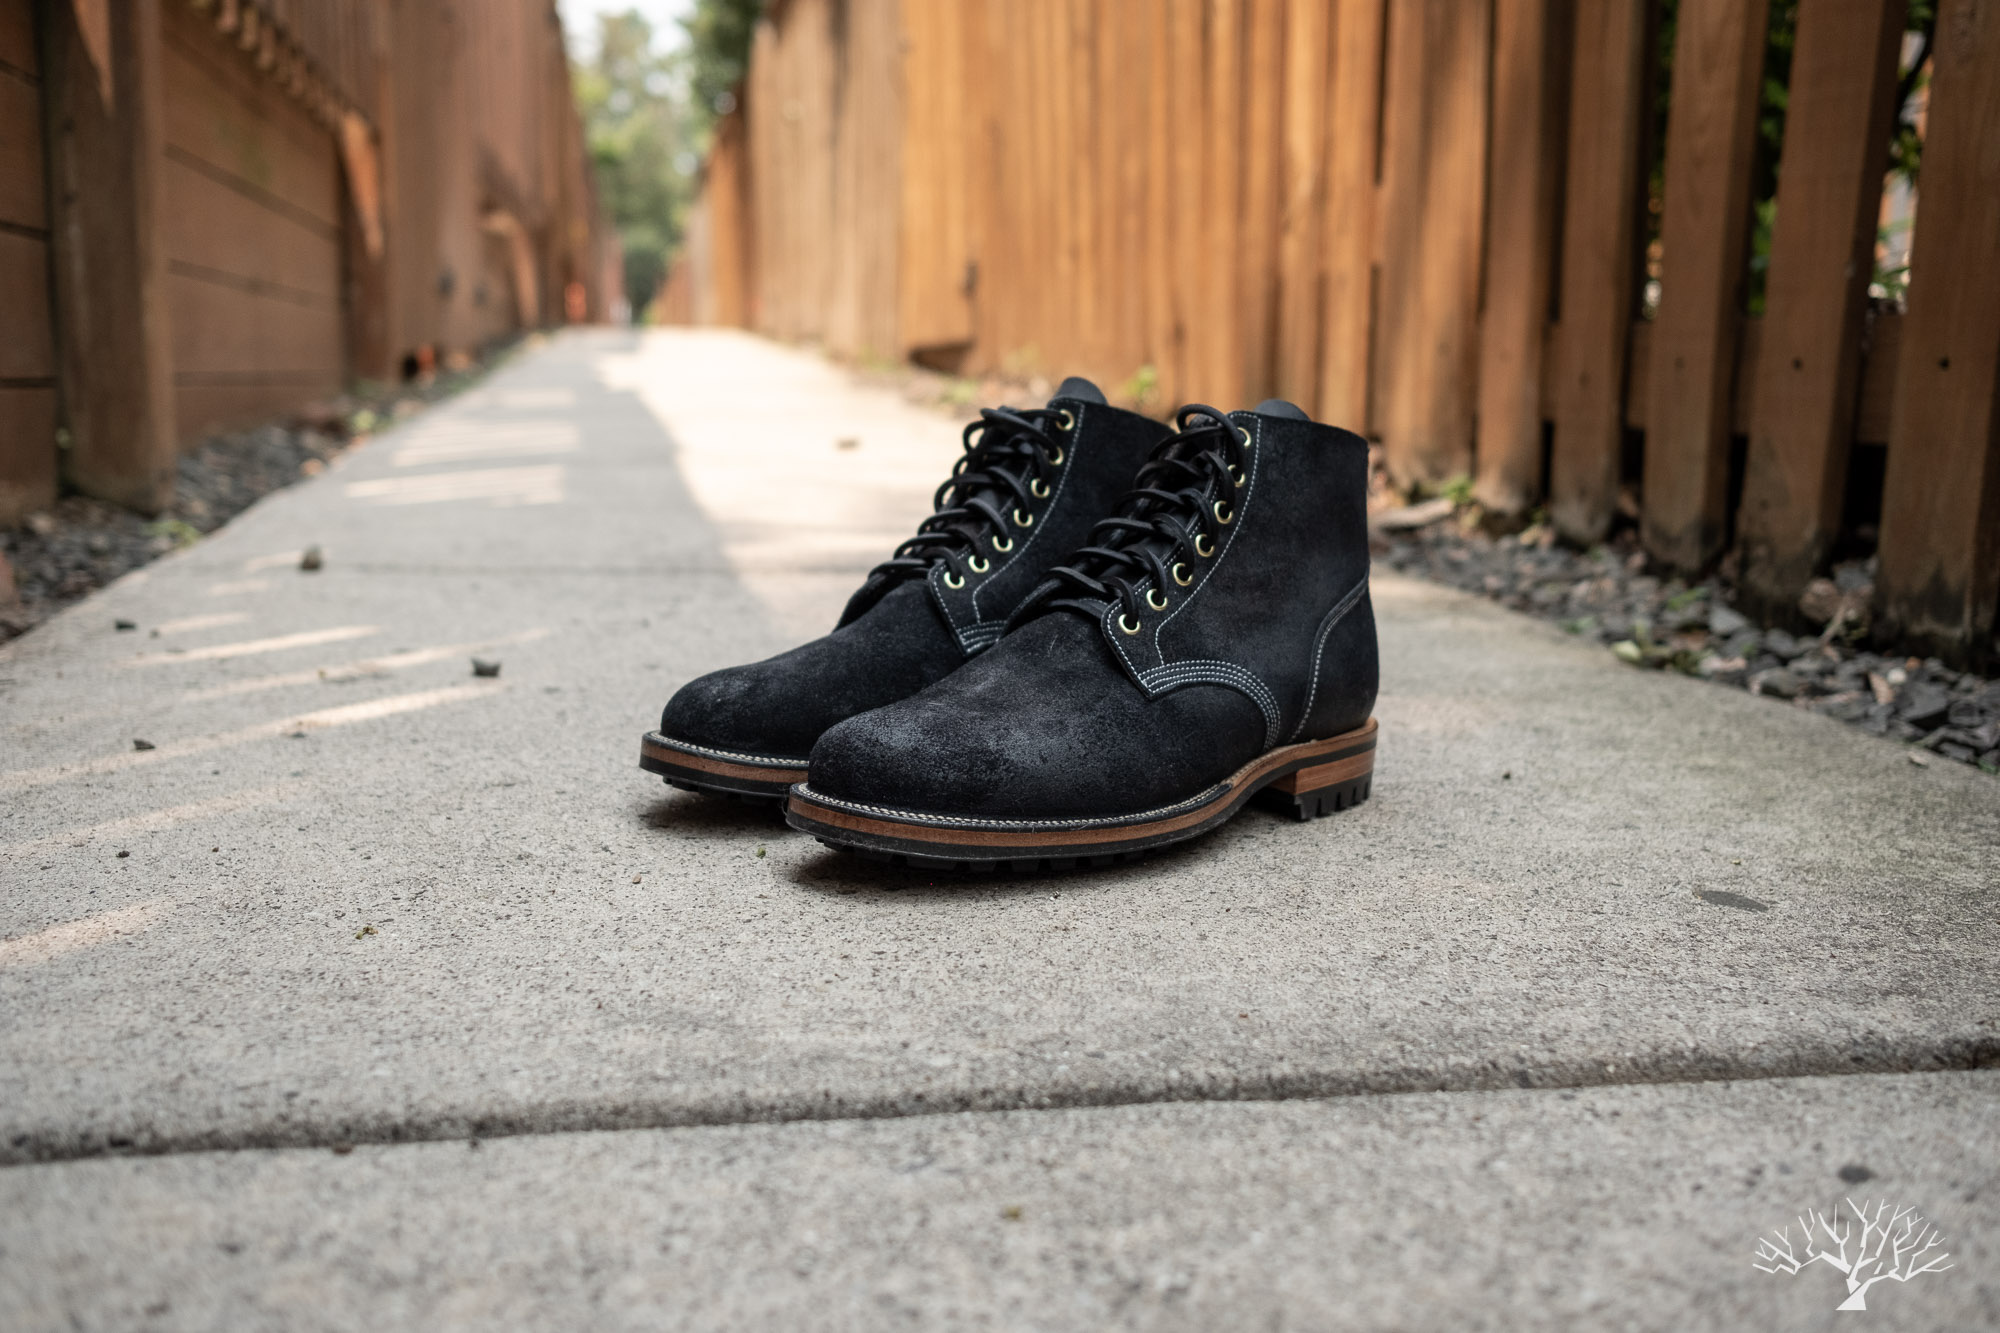 Viberg for Withered Fig Noontime Waterdown Boondocker Petrol Chamois Roughout